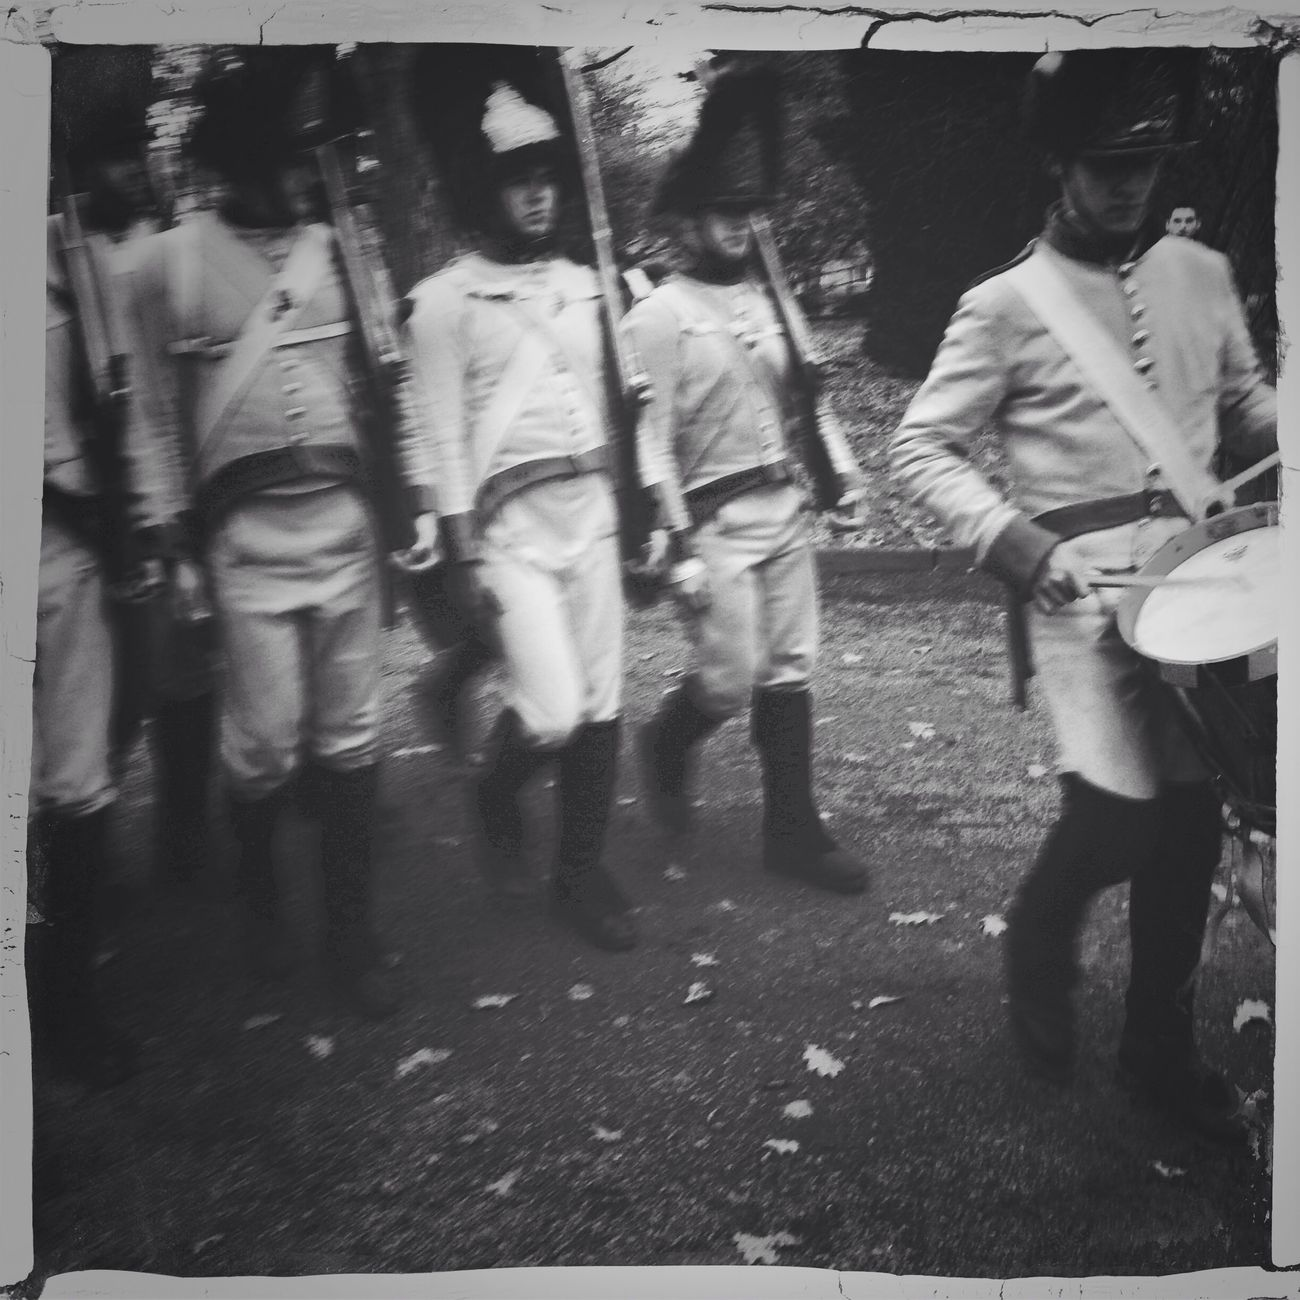 before the Battle of Austerlitz Monochrome Mob Fiction NEM Black&white Bw_ Collection EyeEm Best Shots - Black + White NEM BadKarma Taking Photos EyeEm Hello World Hanging Out